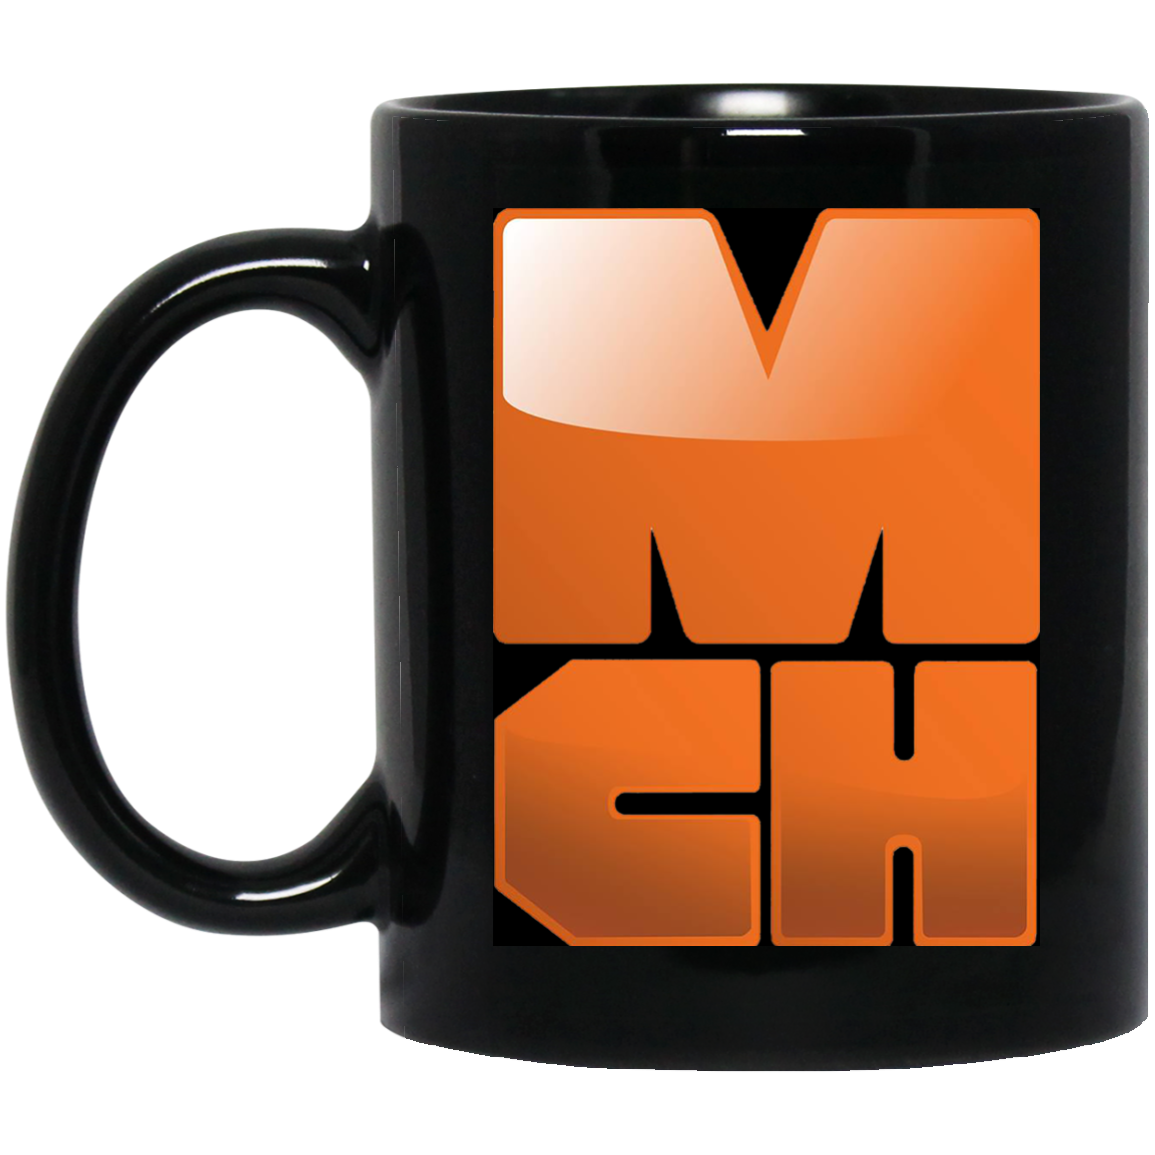 MCH Corp 11 oz. Black Mug